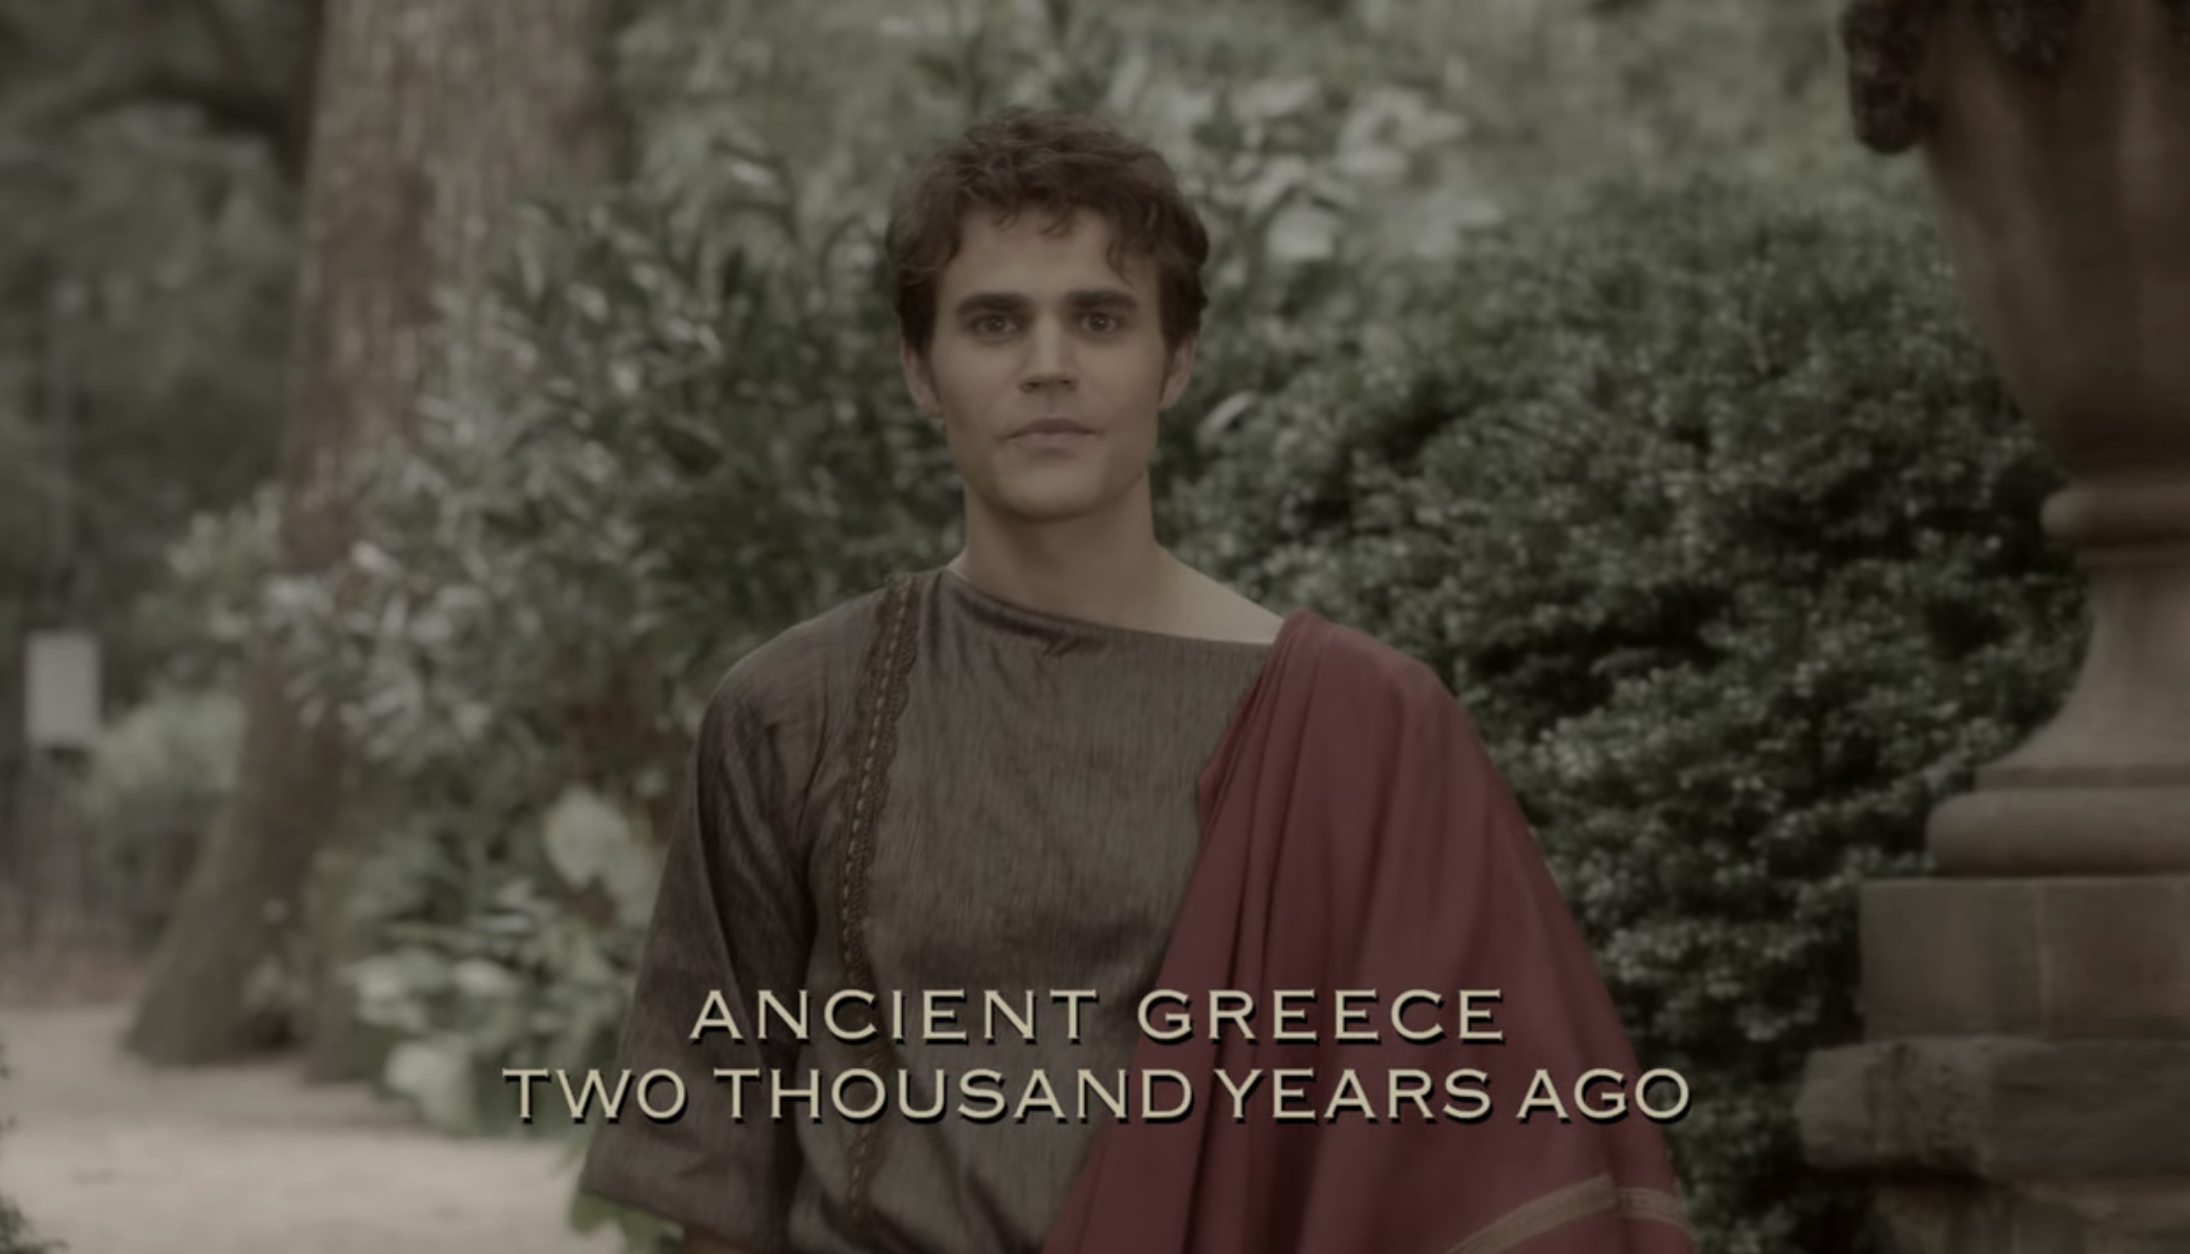 """Silas walking with the caption """"Ancient Greece, 2000 years ago"""""""